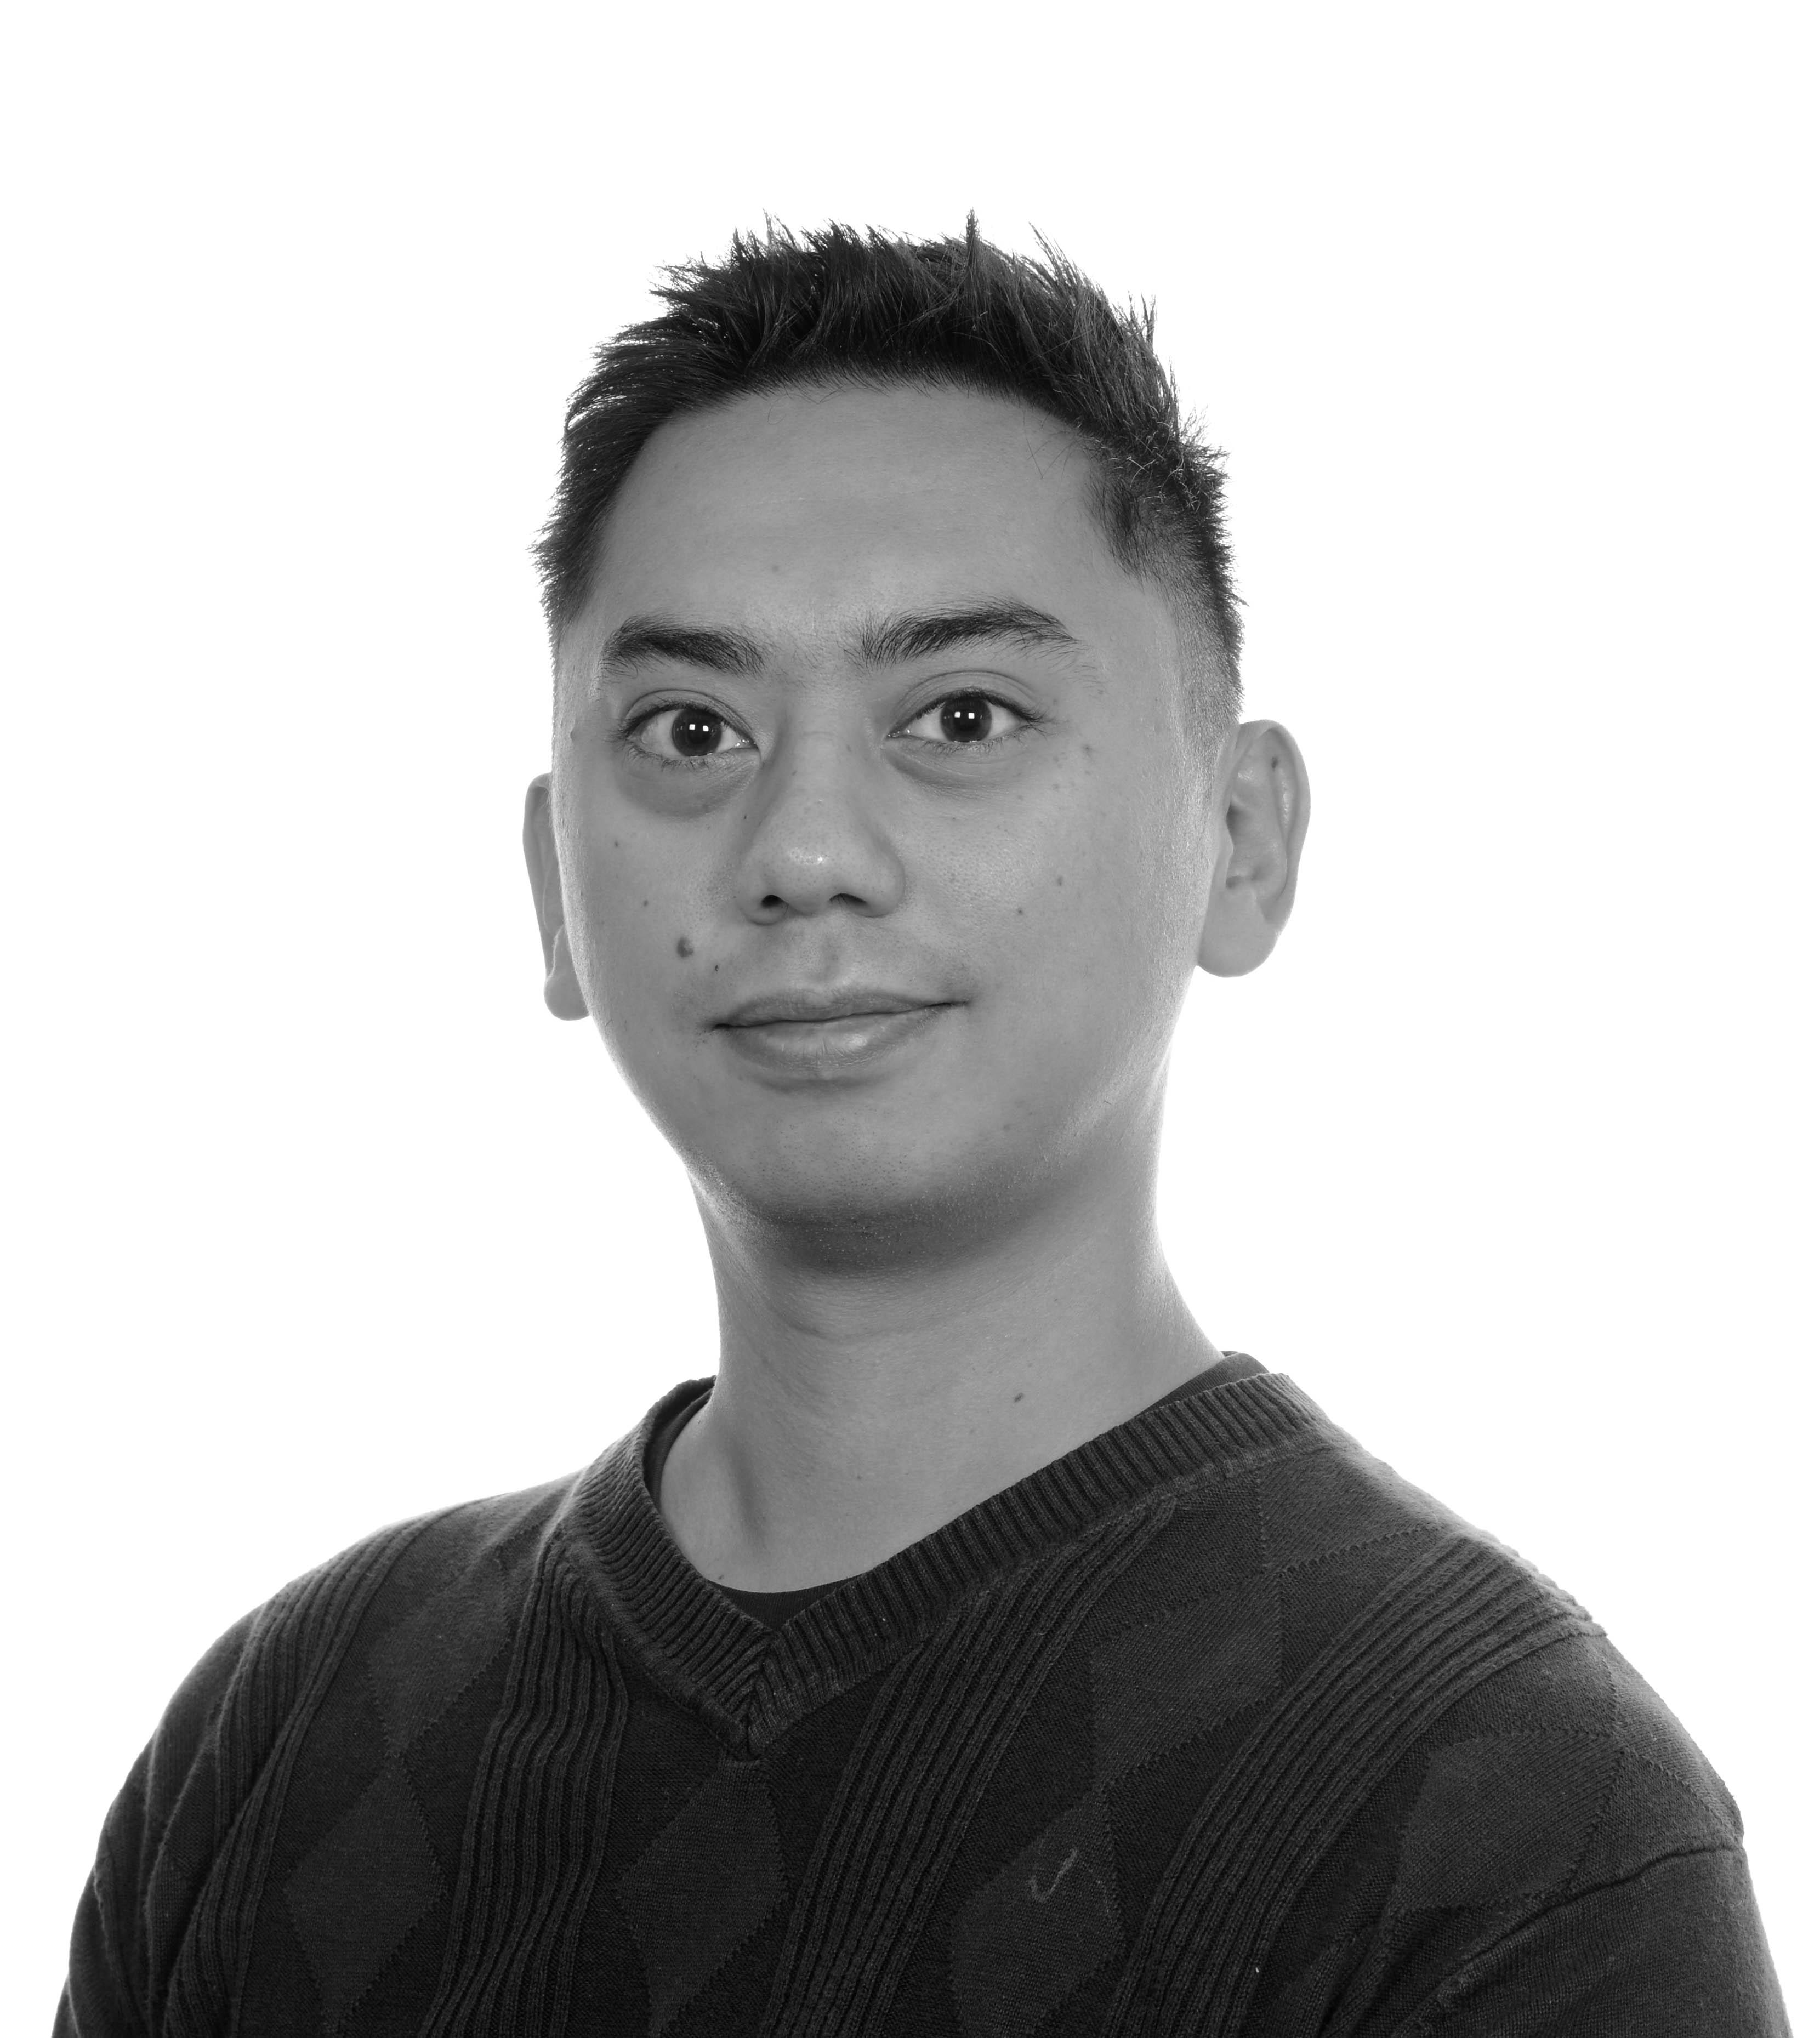 Photo of David Andreas Mana-Ay Christensen